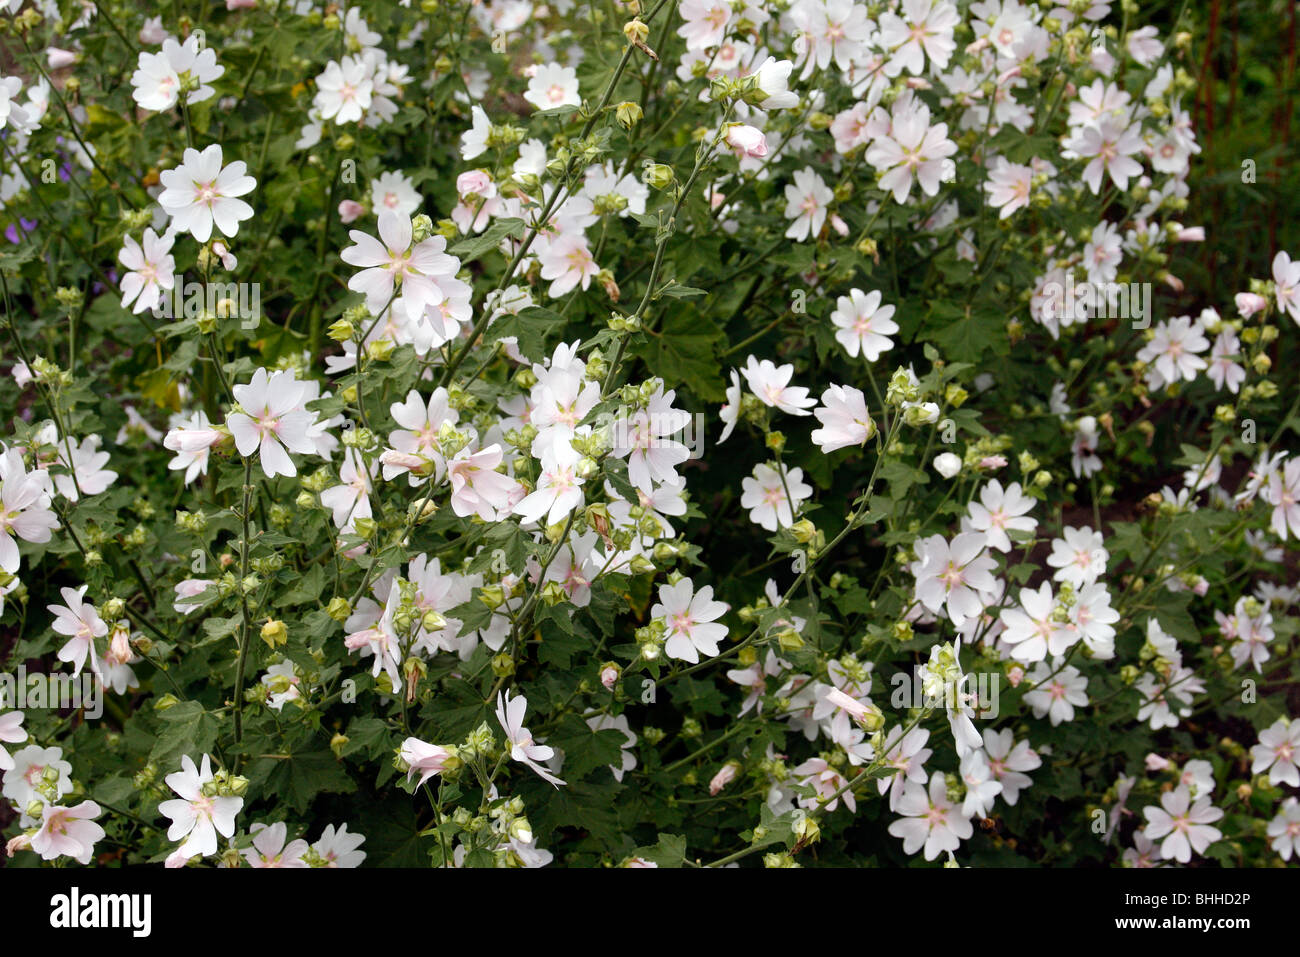 Lavatera white angel stock photo 28042974 alamy lavatera white angel mightylinksfo